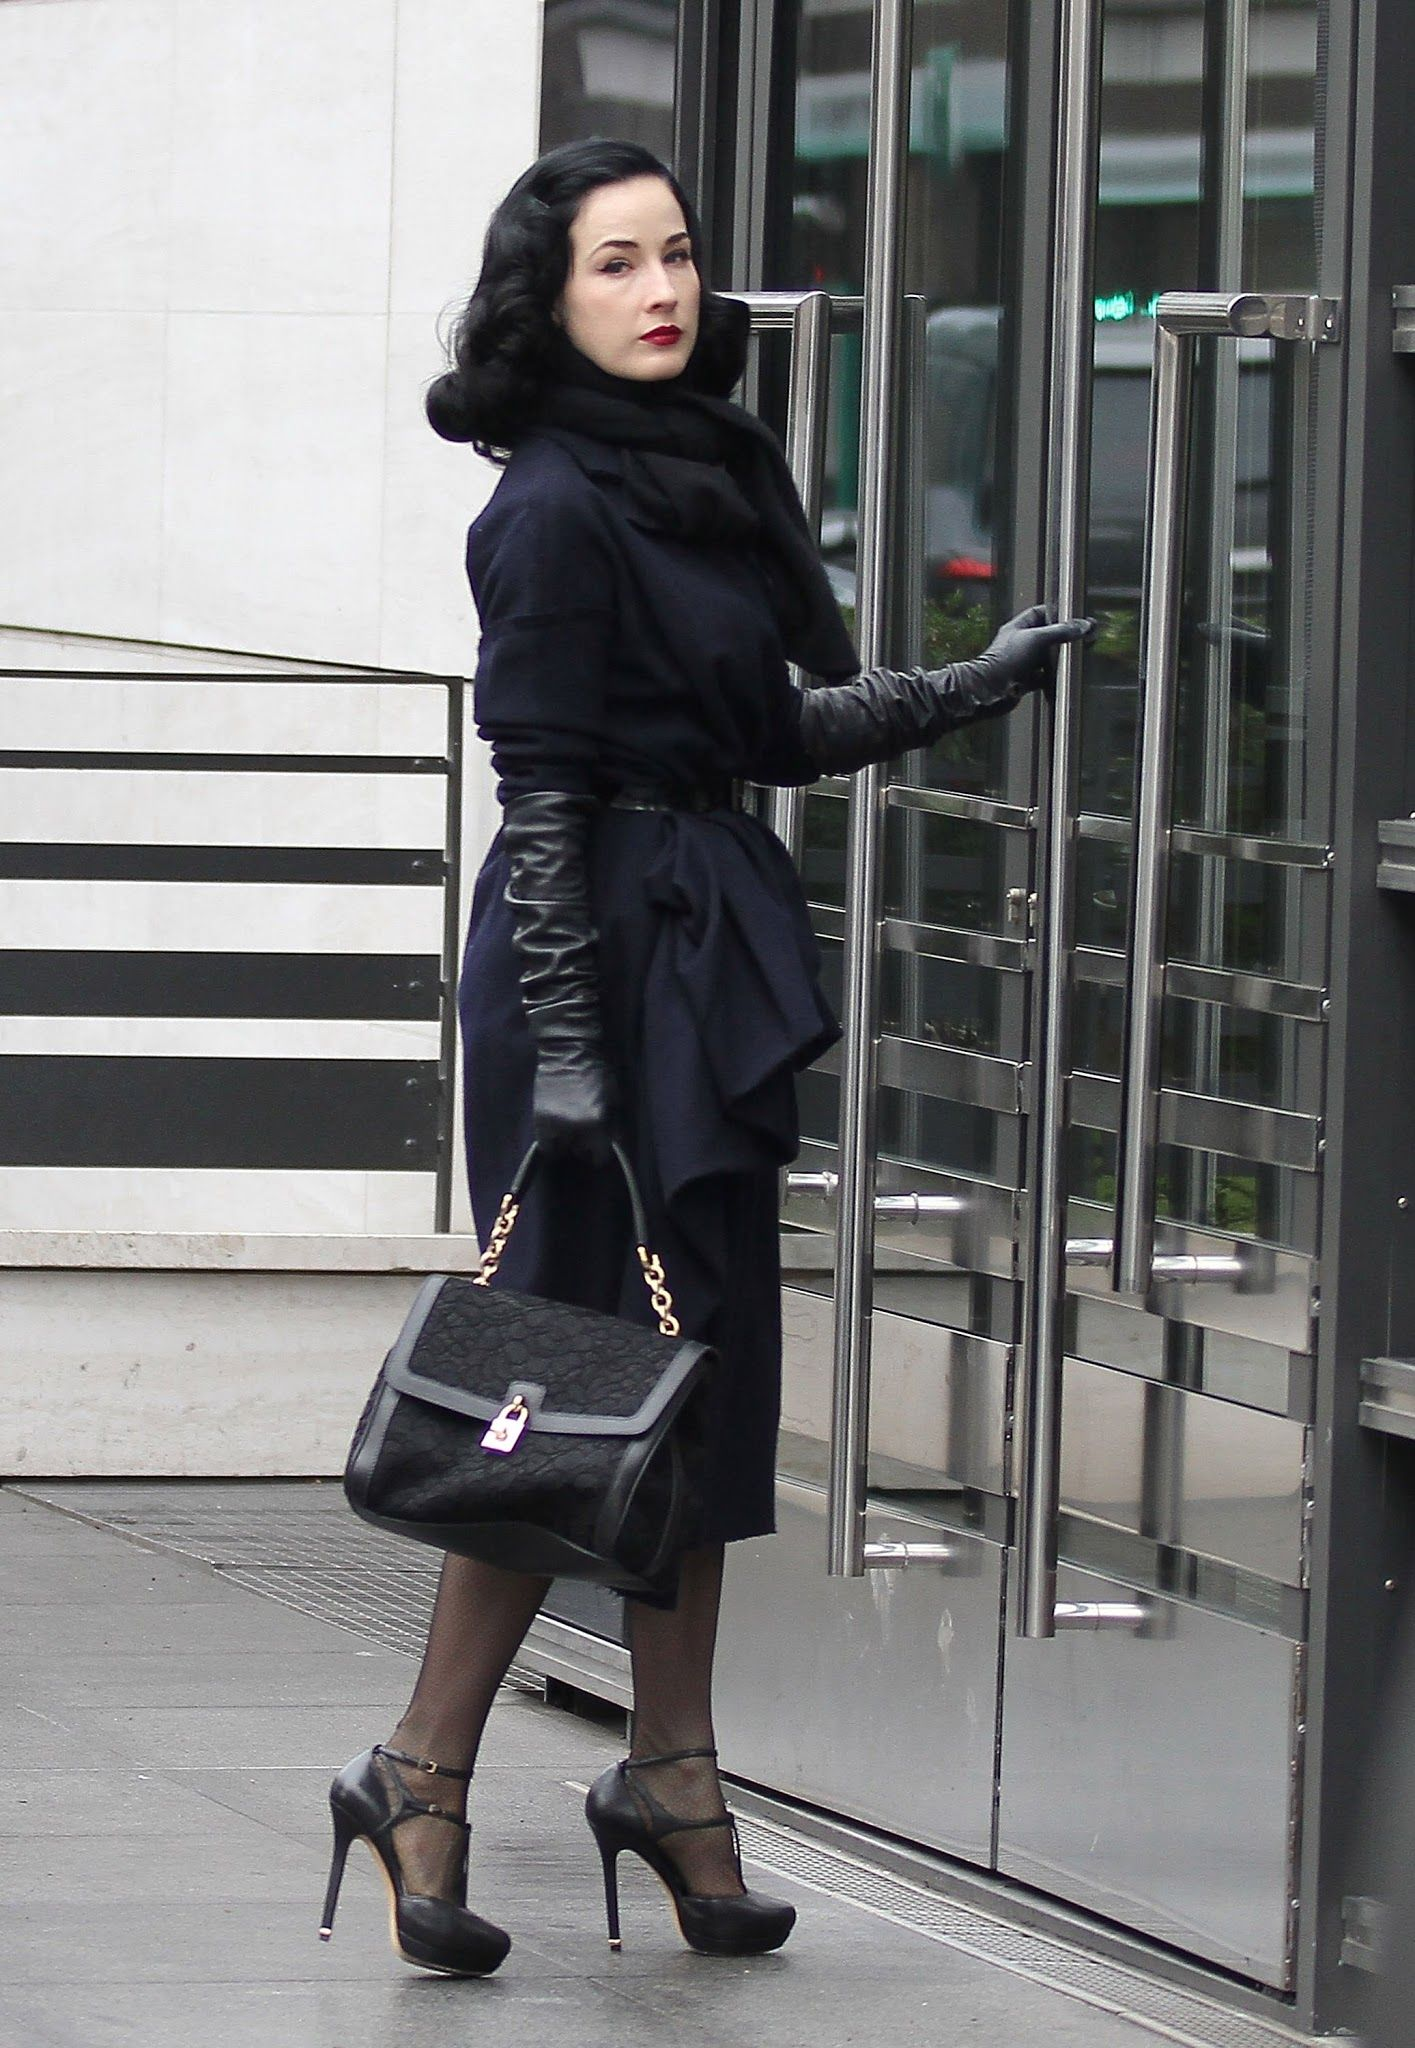 Womens petite leather gloves - Dita Von Teese Great Vintage Look With Long Leather Gloves Gloves Pinterest Leather Gloves Dita Von Teese And Dita Von